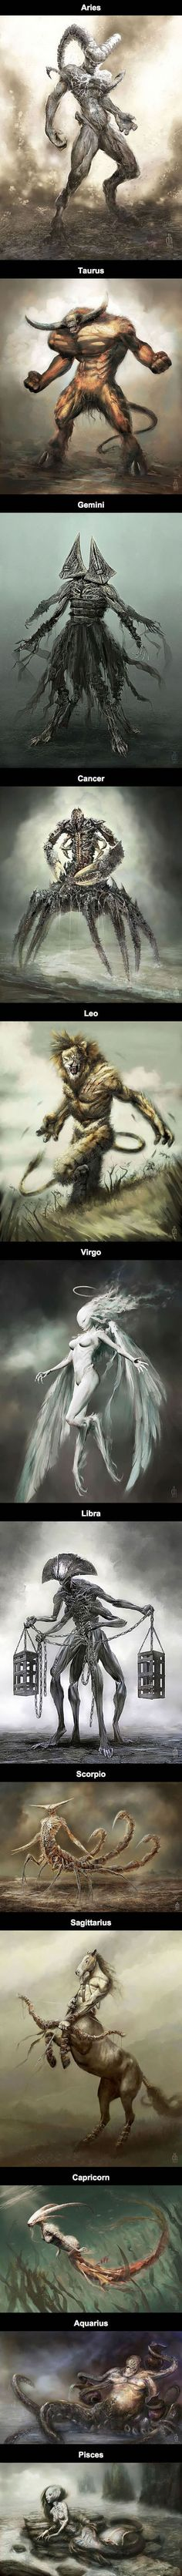 Awesome Zodiac drawings (By Damon Hellandbrand) - 9GAG